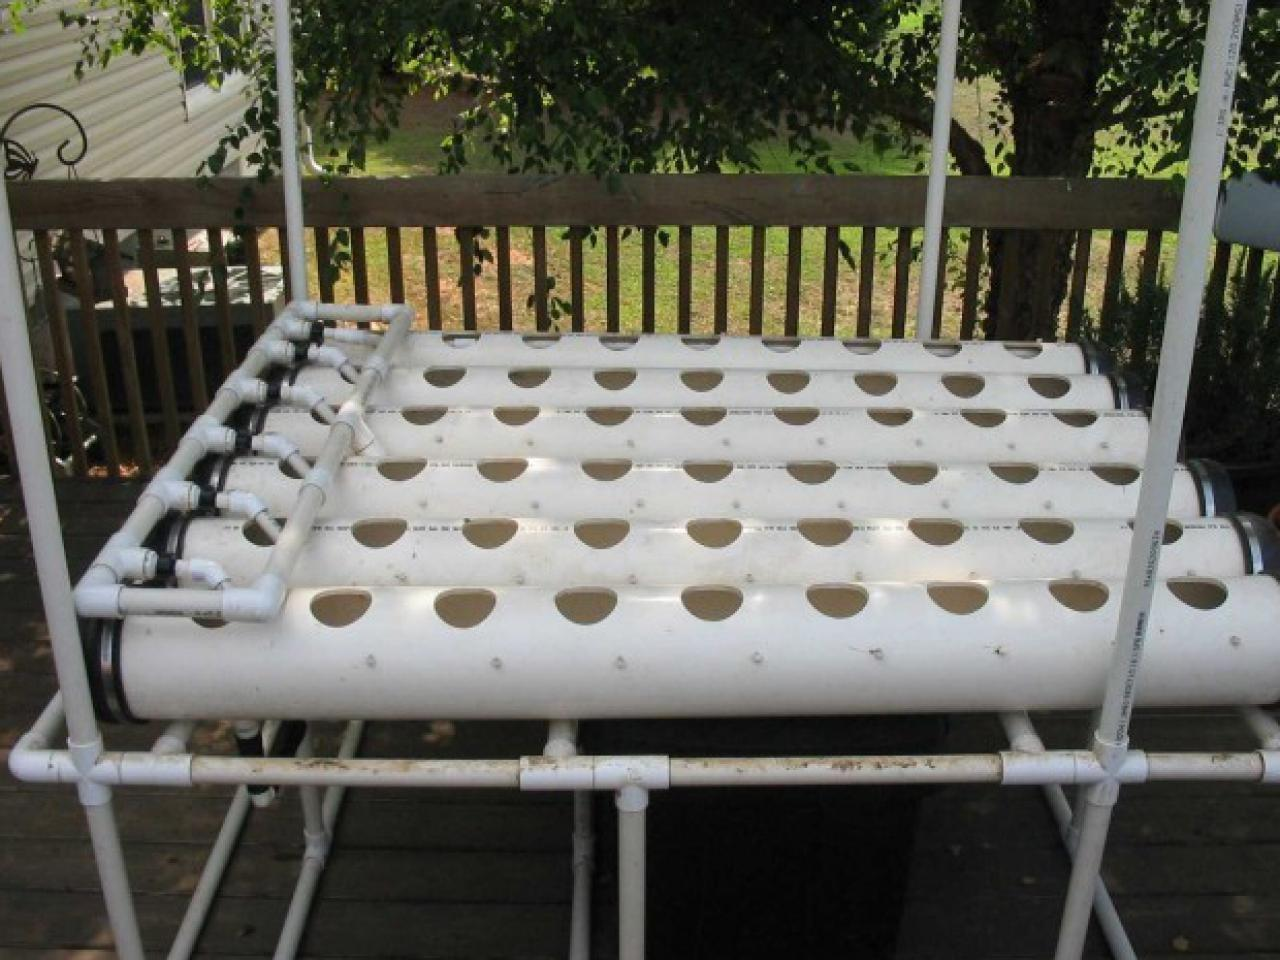 Assemble Homemade Hydroponic System Tos Diy